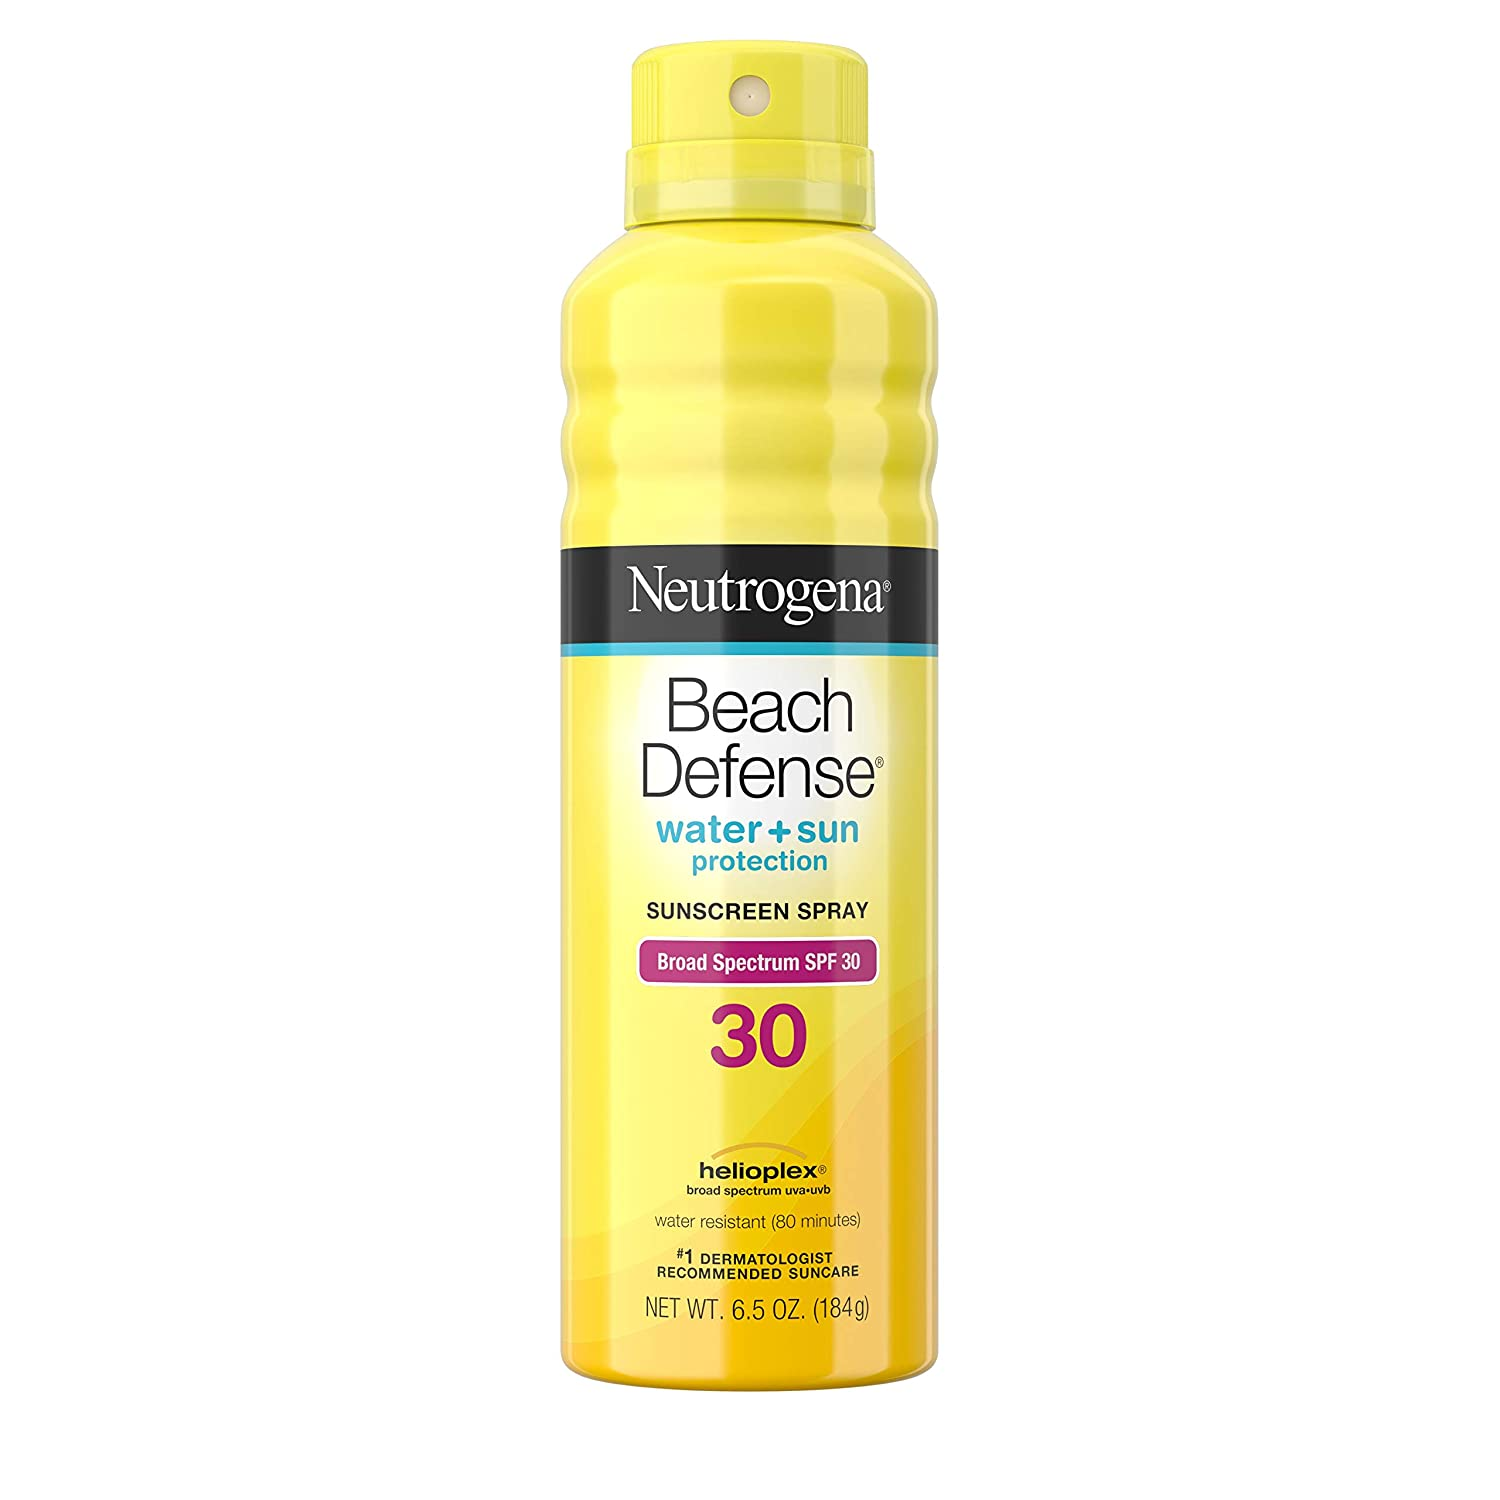 Neutrogena Beach Defense Water-Resistant Sunscreen Body Spray with Broad Spectrum SPF 30, PABA-Free, Oxybenzone-Free & Fast-Drying, Superior Sun Protection, 6.5 oz ( Pack of 3)